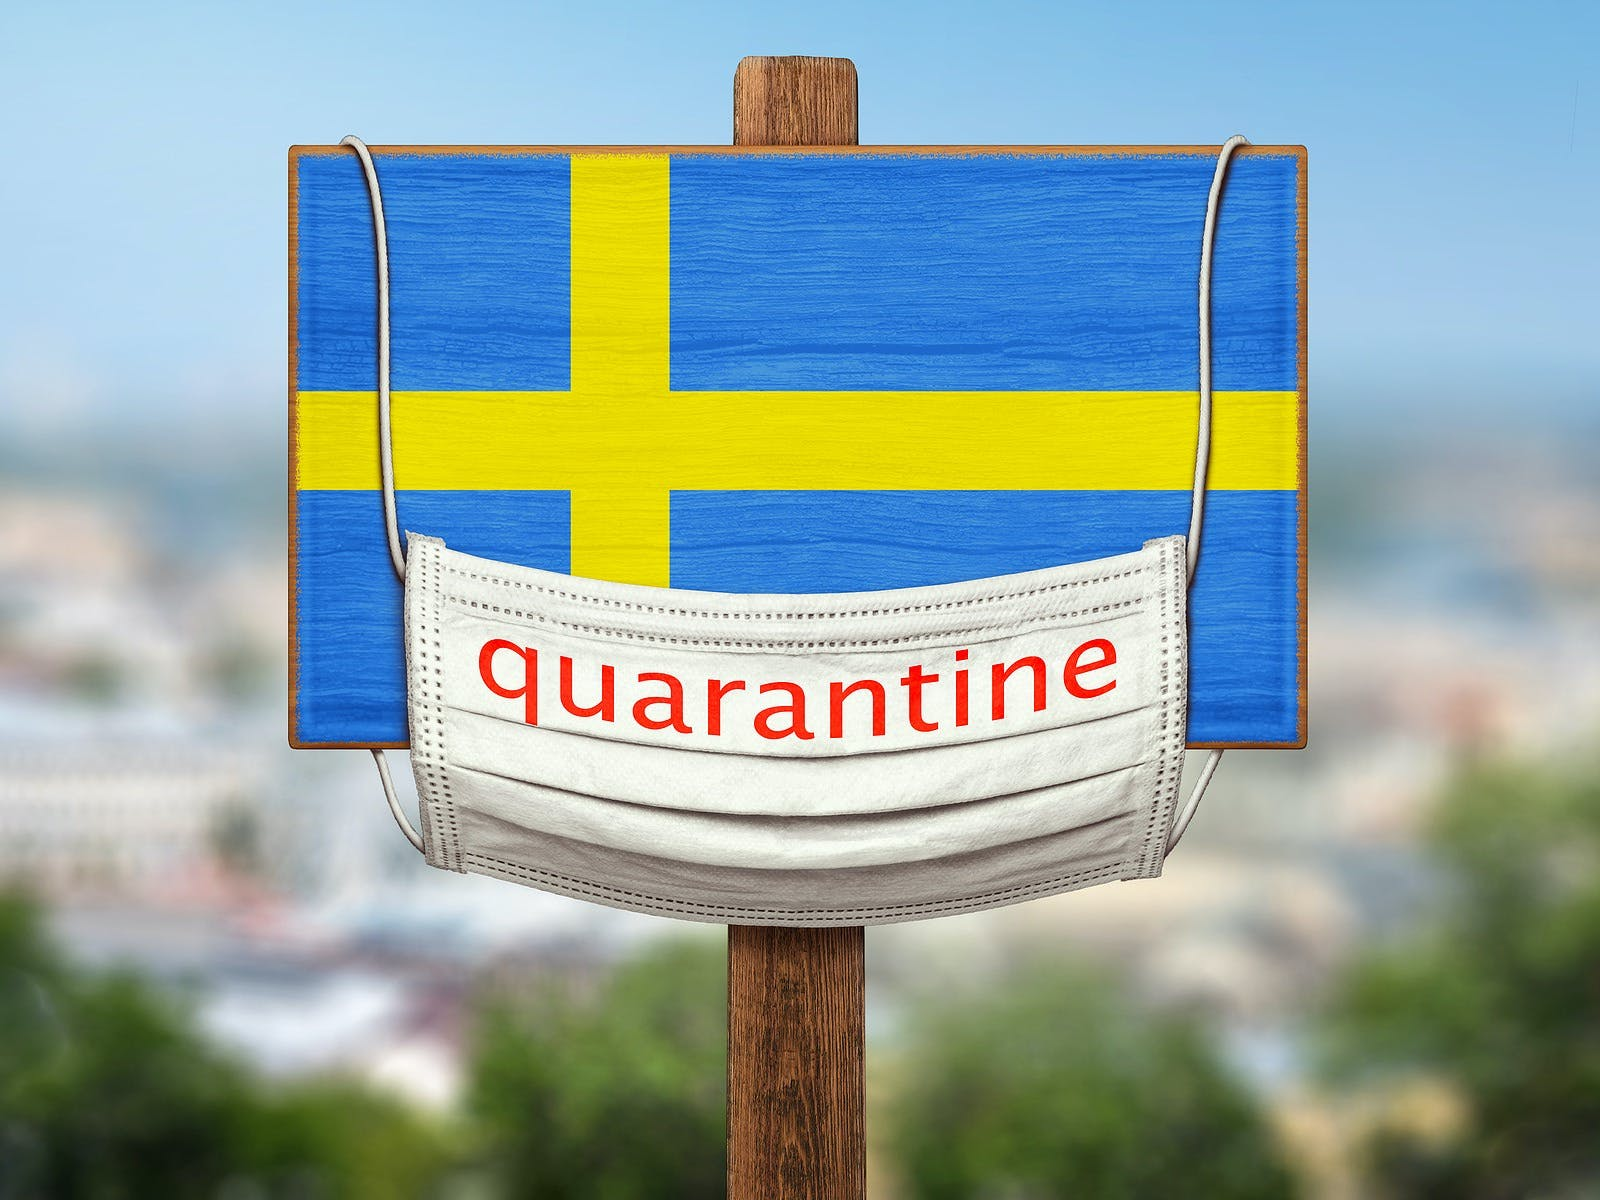 Sign on the background of the city. Quarantine during the COVID-19 coronavirus pandemic in Sweden. Medical mask with the inscription Quarantine hangs on a sign with an image of the flag of Sweden. Anti-epidemic measures.